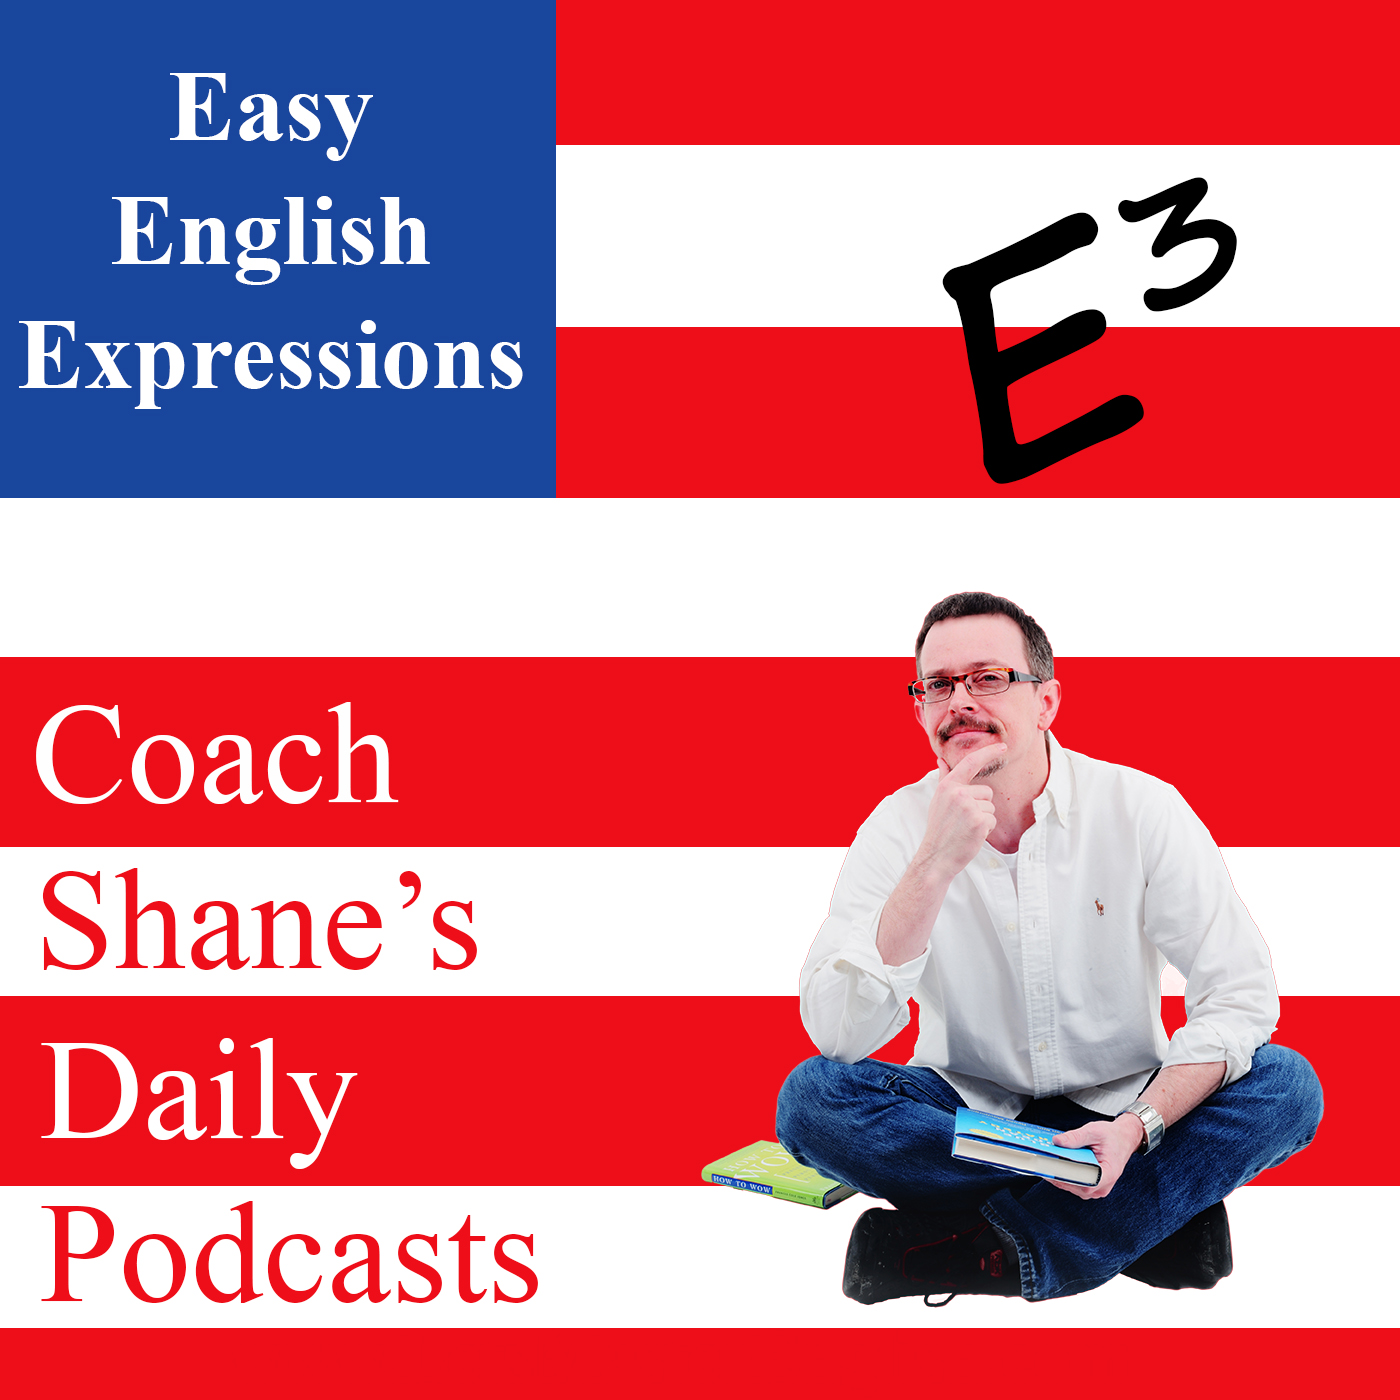 35 Daily Easy English Expression PODCAST—It'll all come down to...